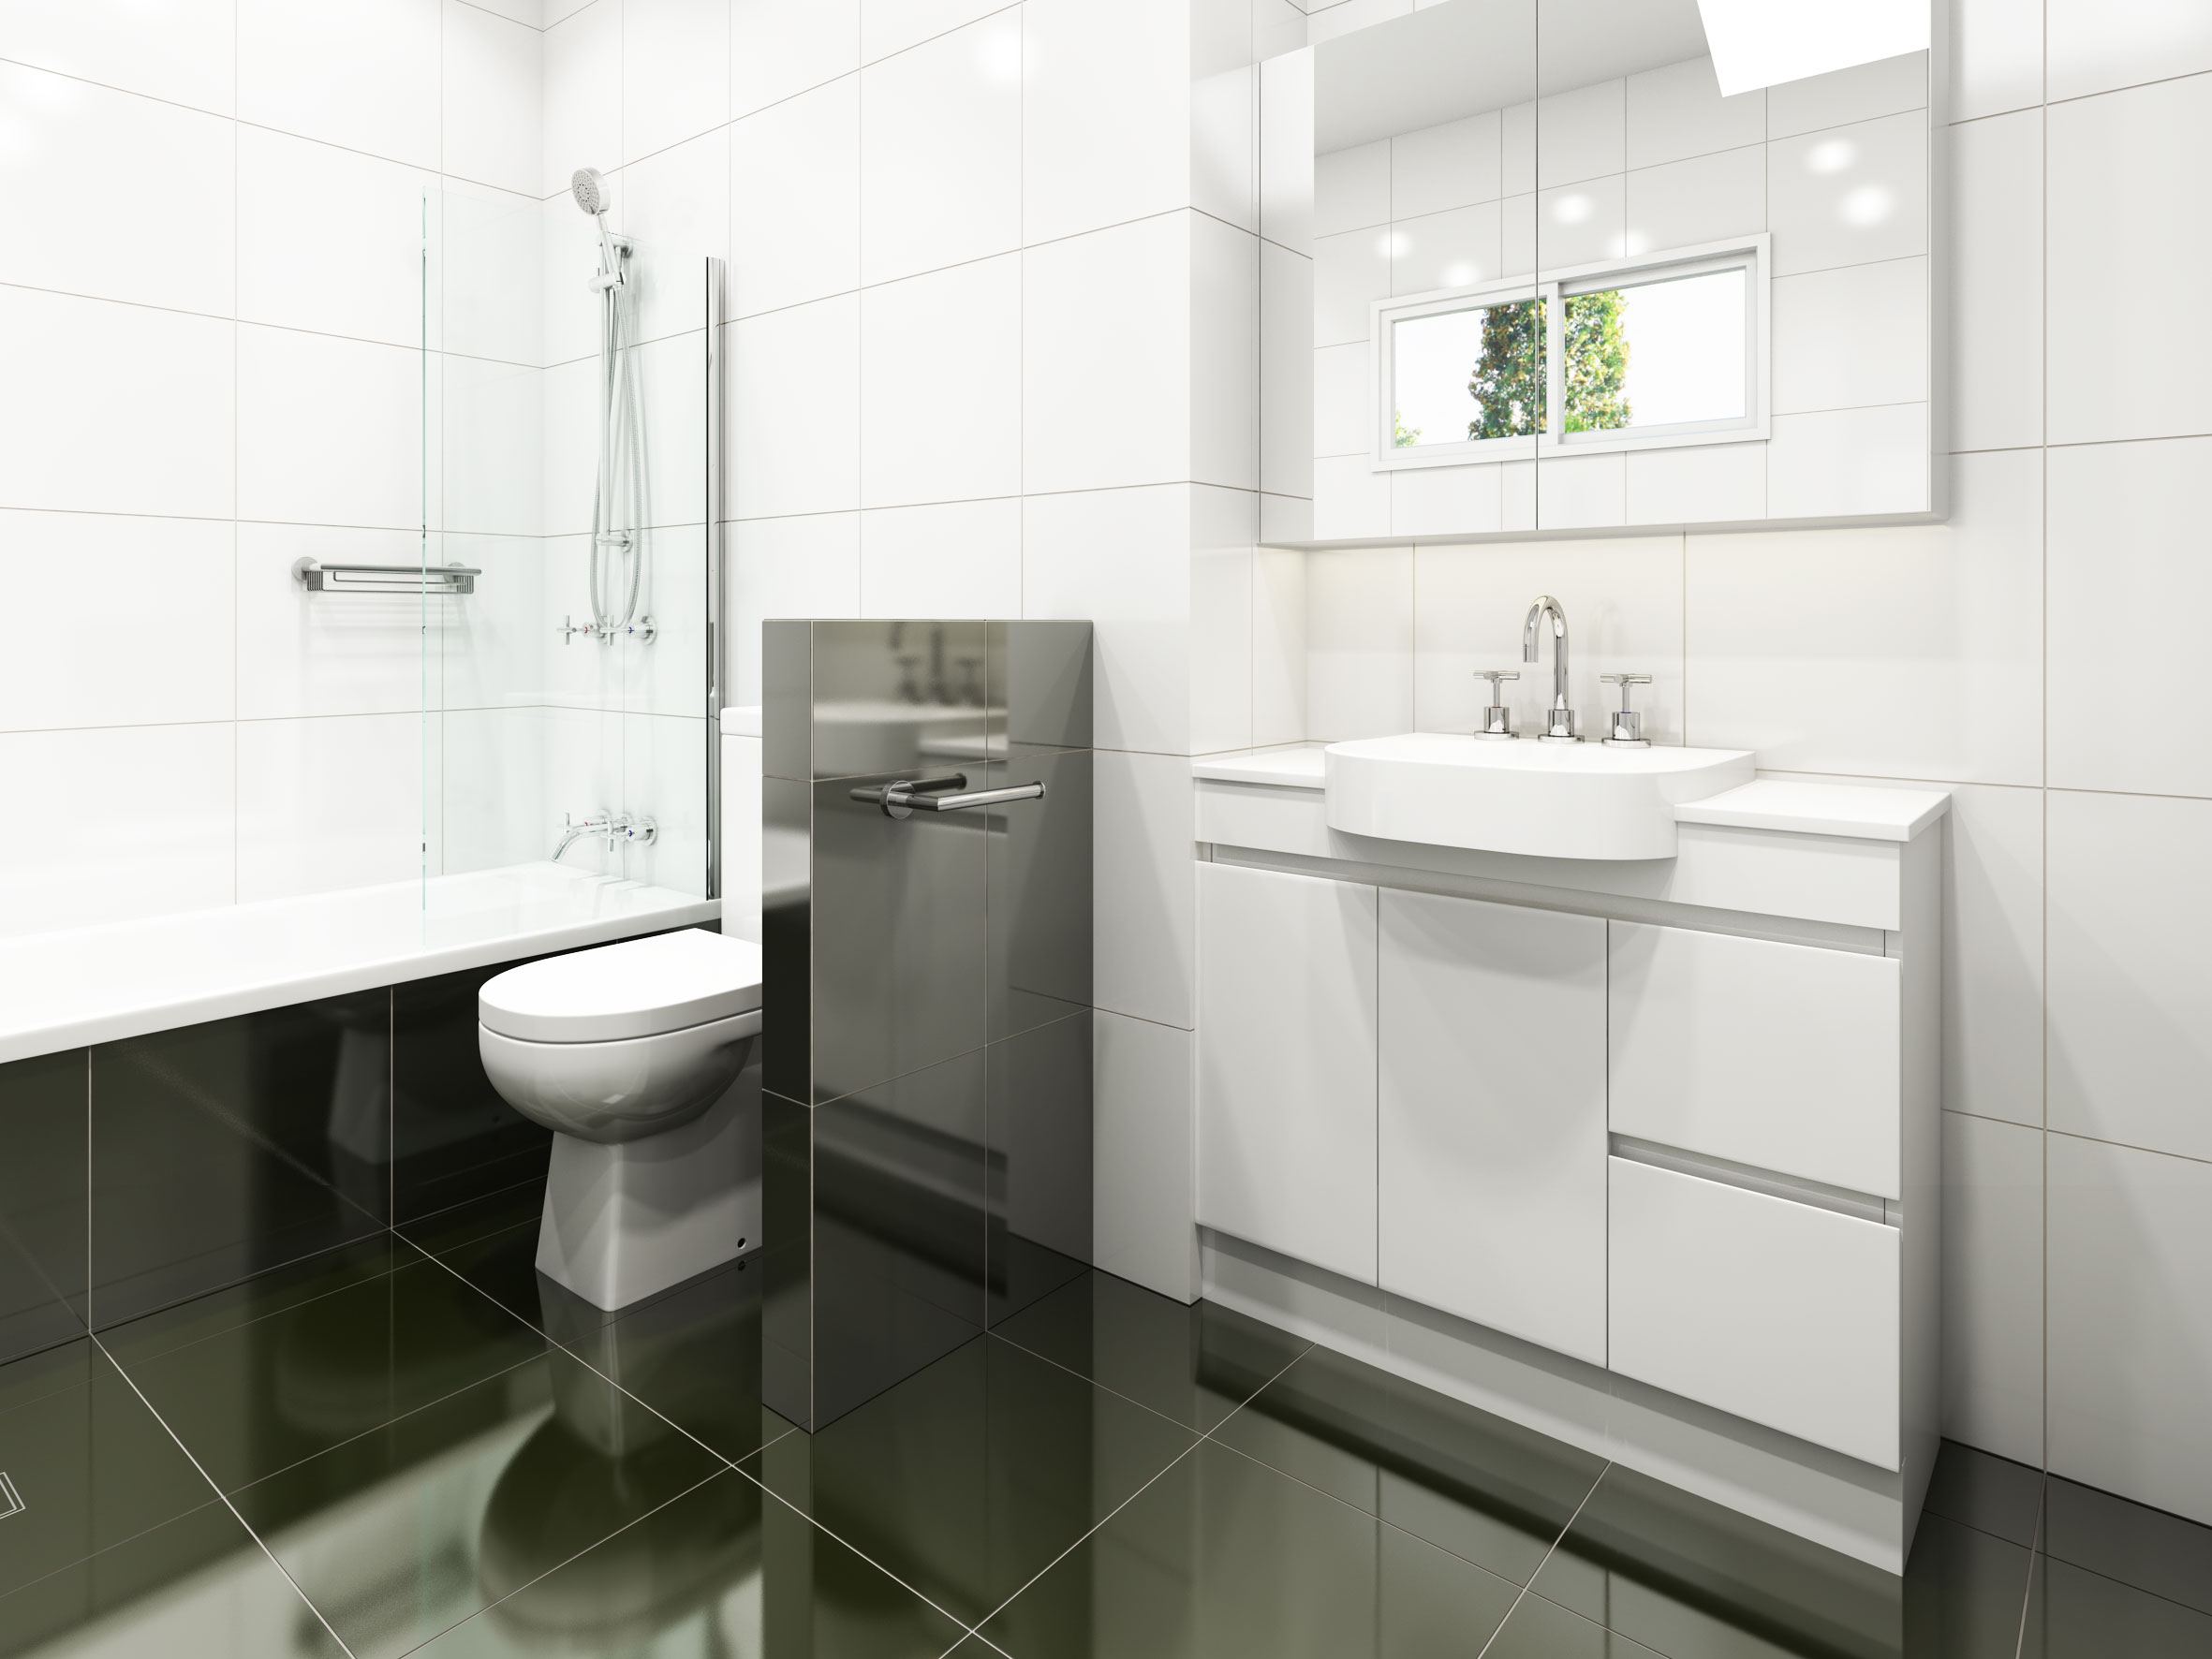 Bathroom renovation ideas 2015 - Bathroom renovation ideas for tight budget ...